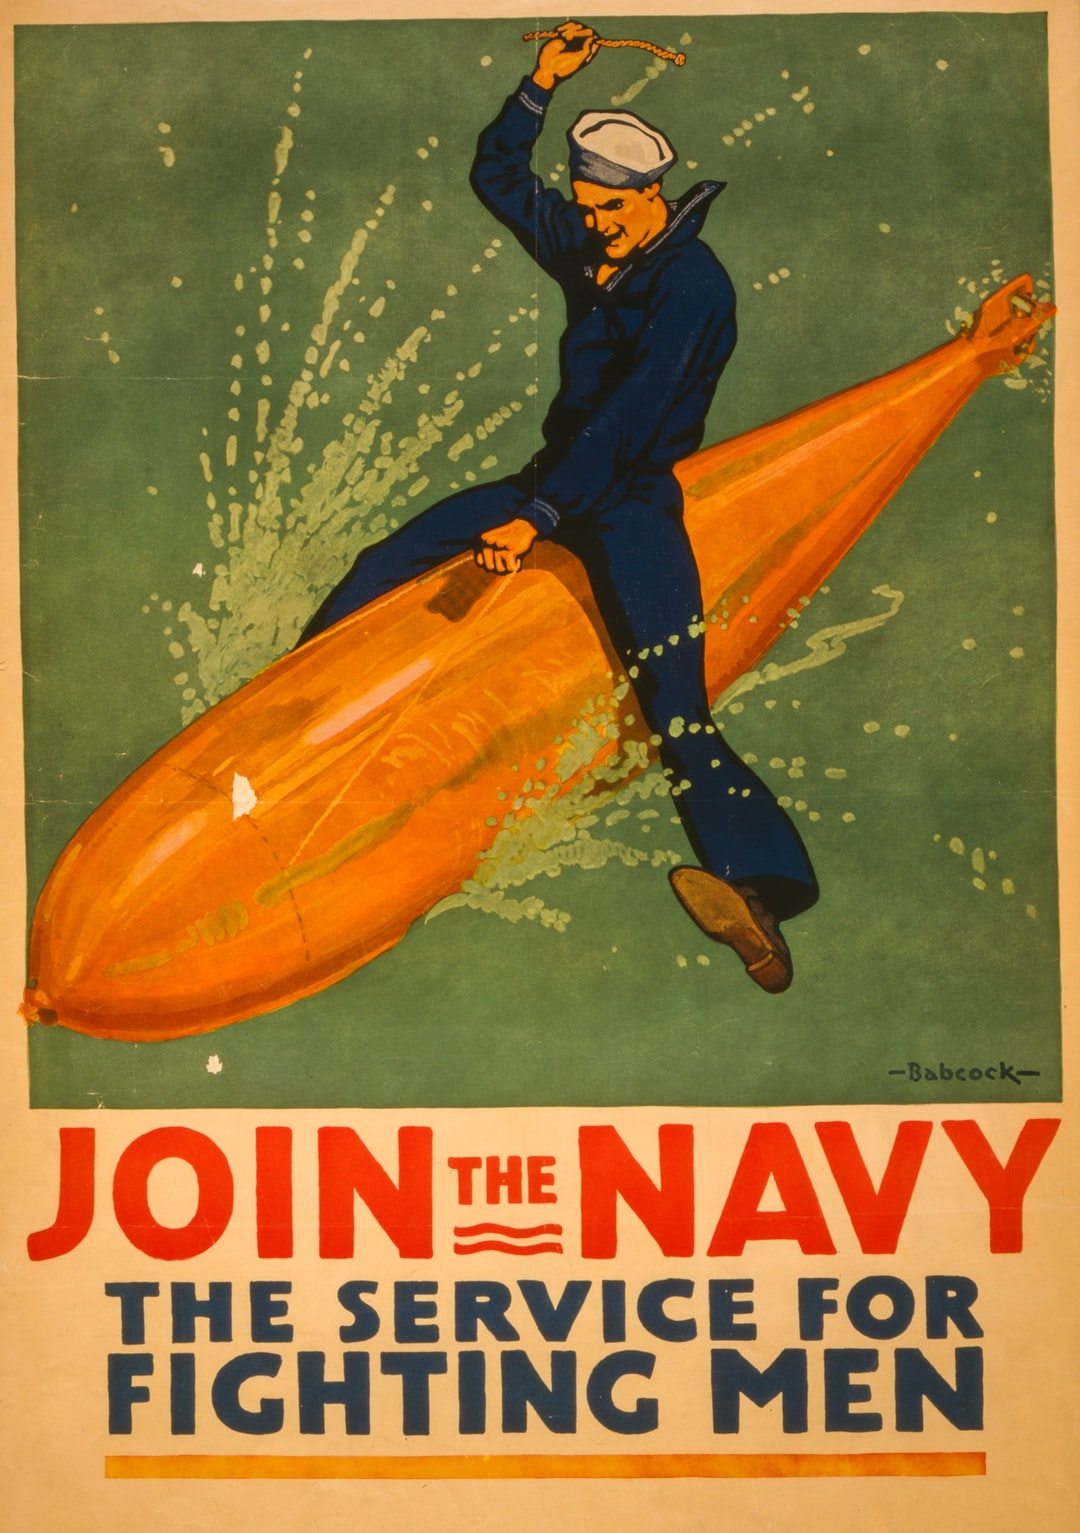 Join the Navy, the service for fighting men. Poster by artist Richard Fayerweather Babcock, [1917]. From the Posters: World War I Collection. Library of Congress Prints & Photographs Division.  https://www.loc.gov/item/2002699393/